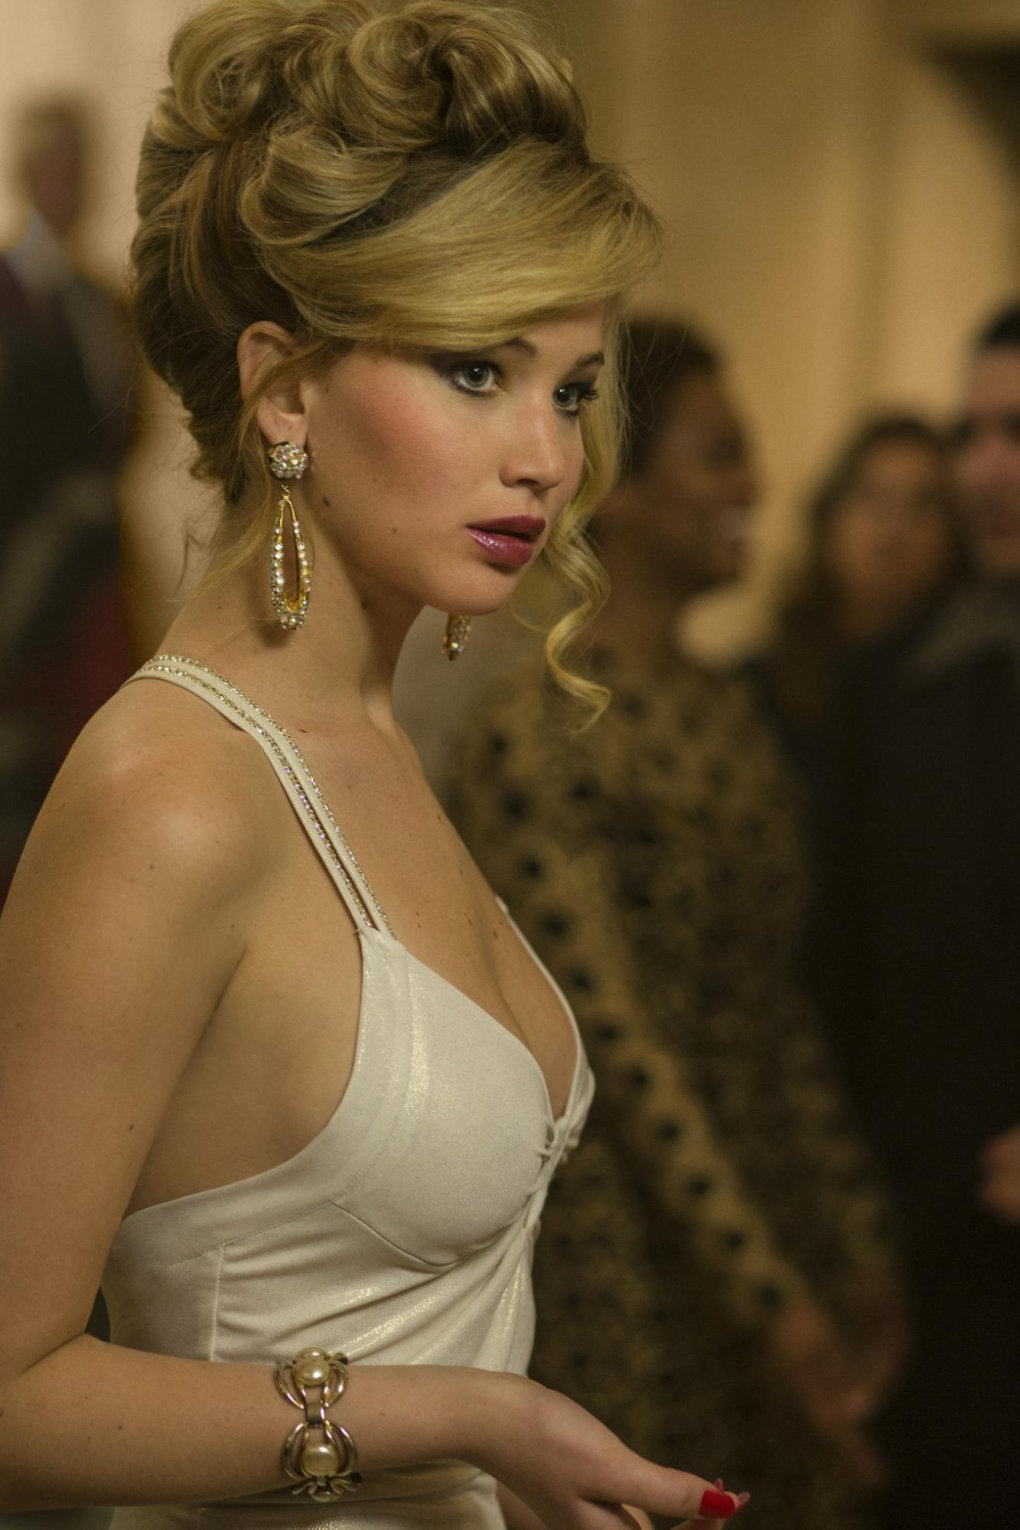 Jennifer lawrence private photos icloud